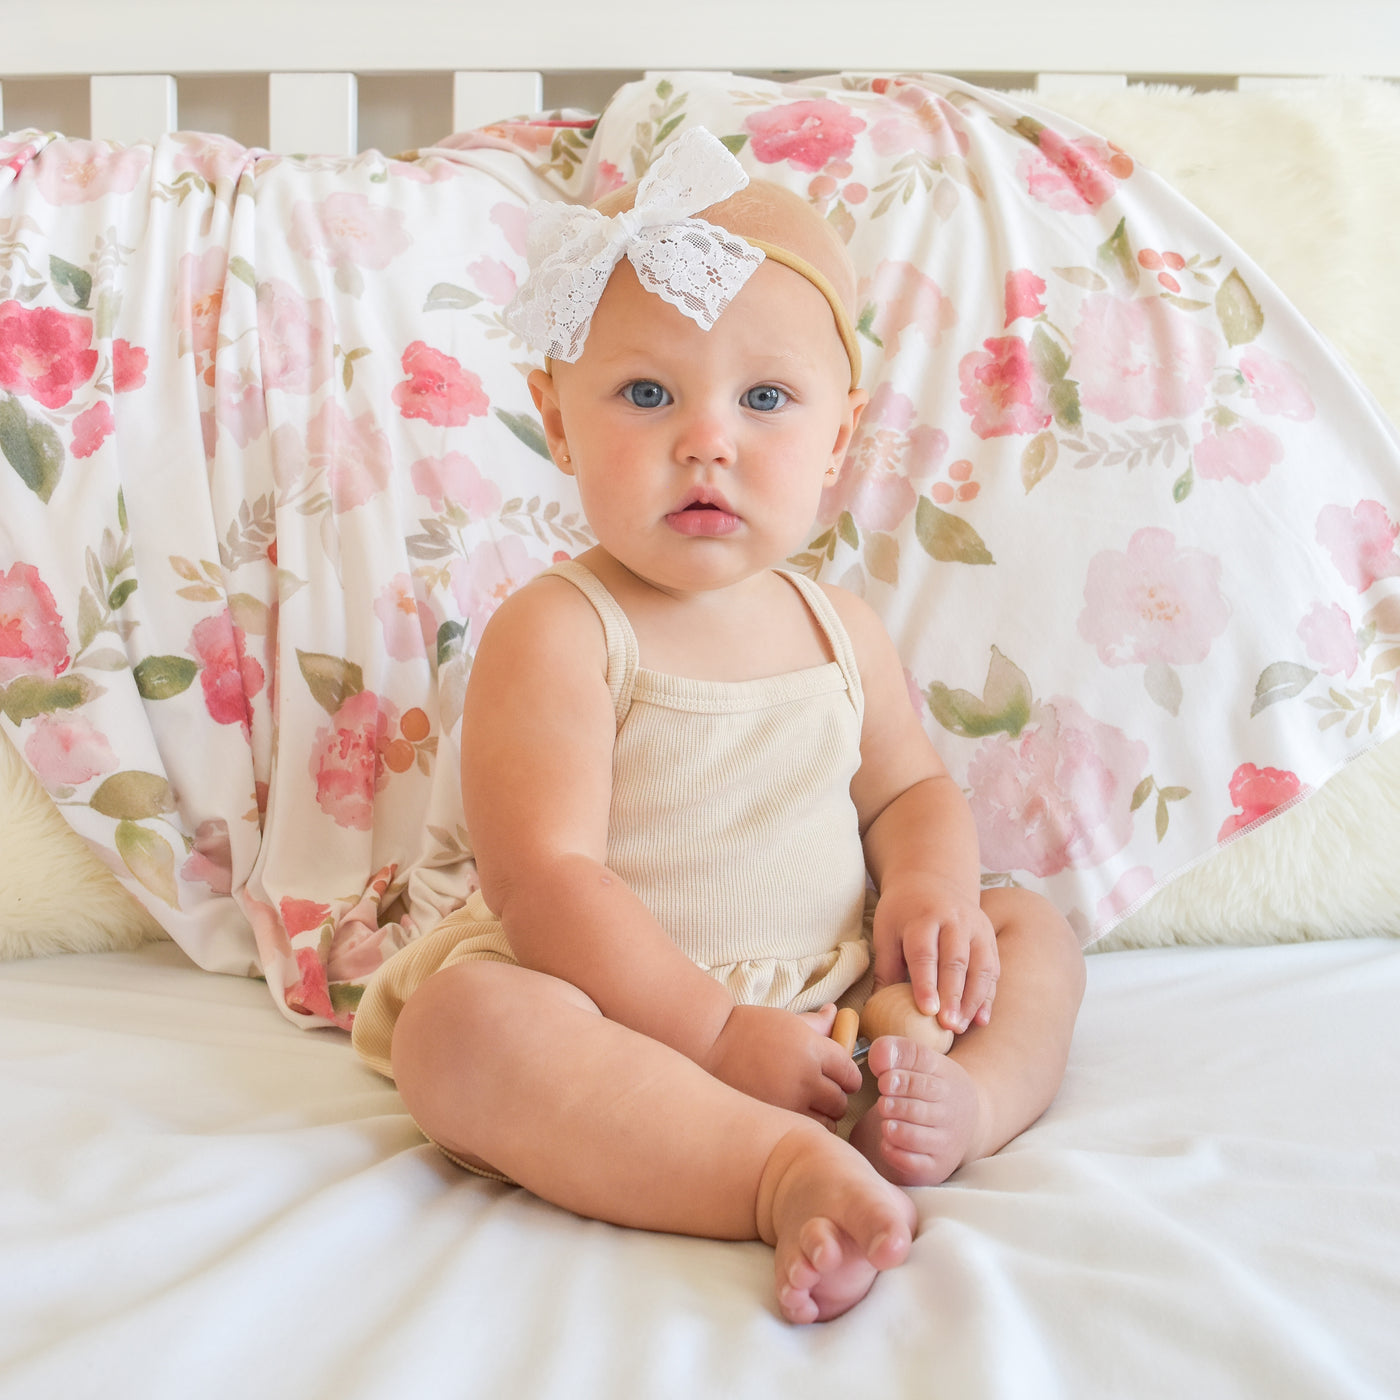 Extra Soft Stretchy Knit Swaddle Blanket: Painted Petals